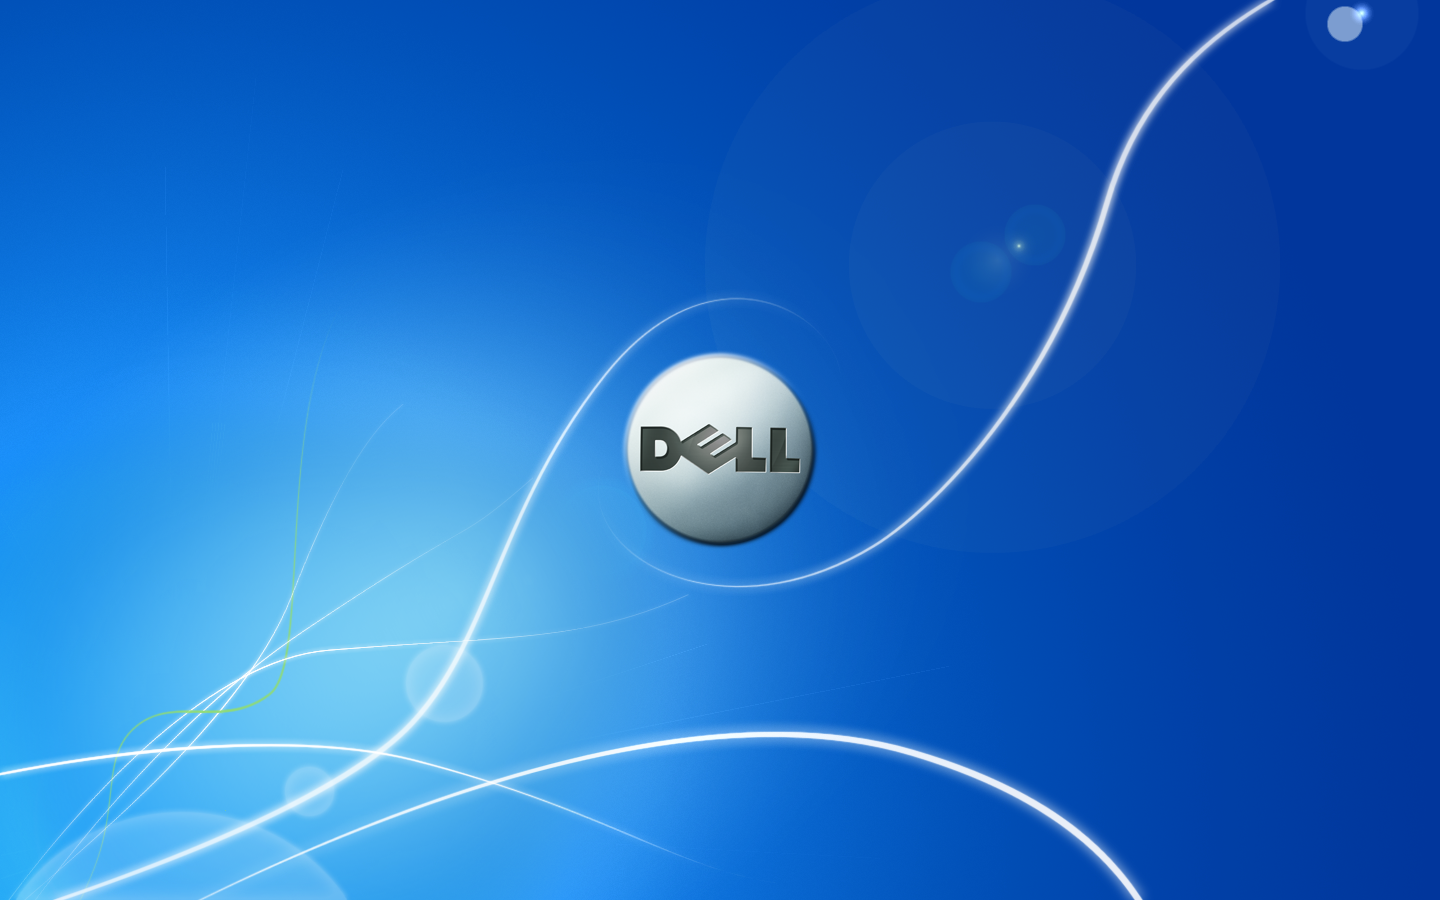 Free Download 26 New Dell Wallpapers Xhp71 Full Hd Quality